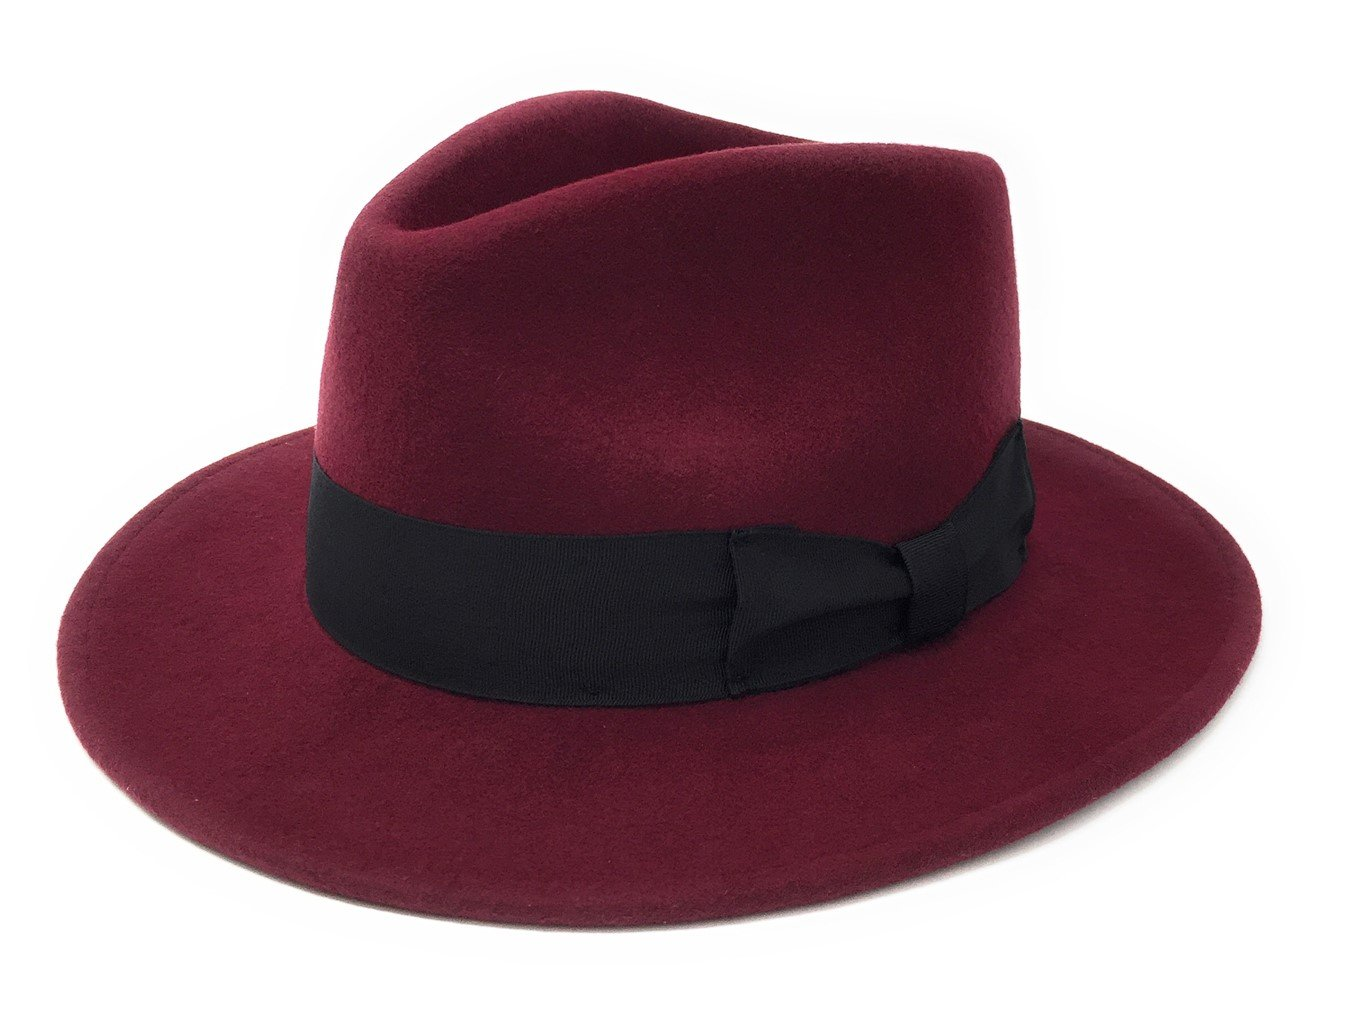 Cotswold Country Hats Mens Handmade 100% Premium Wool Felt Indiana Style Crushable Fedora Hat - Small, Medium, Large, XL, 2XL. Fabric Protector Treated - Indy